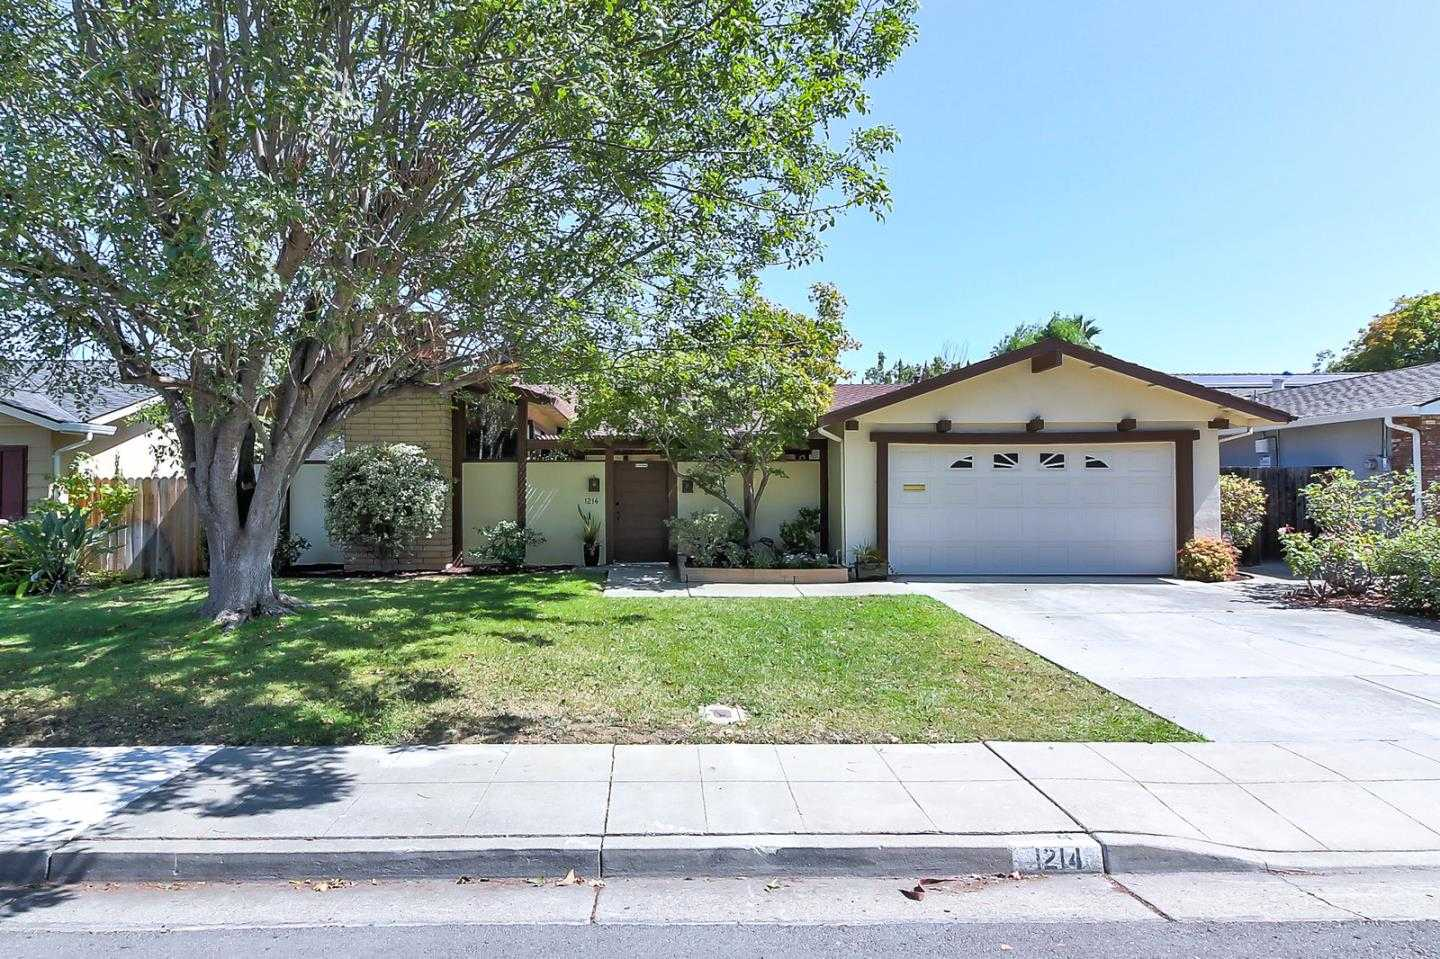 $1,698,000 - 4Br/2Ba -  for Sale in Sunnyvale